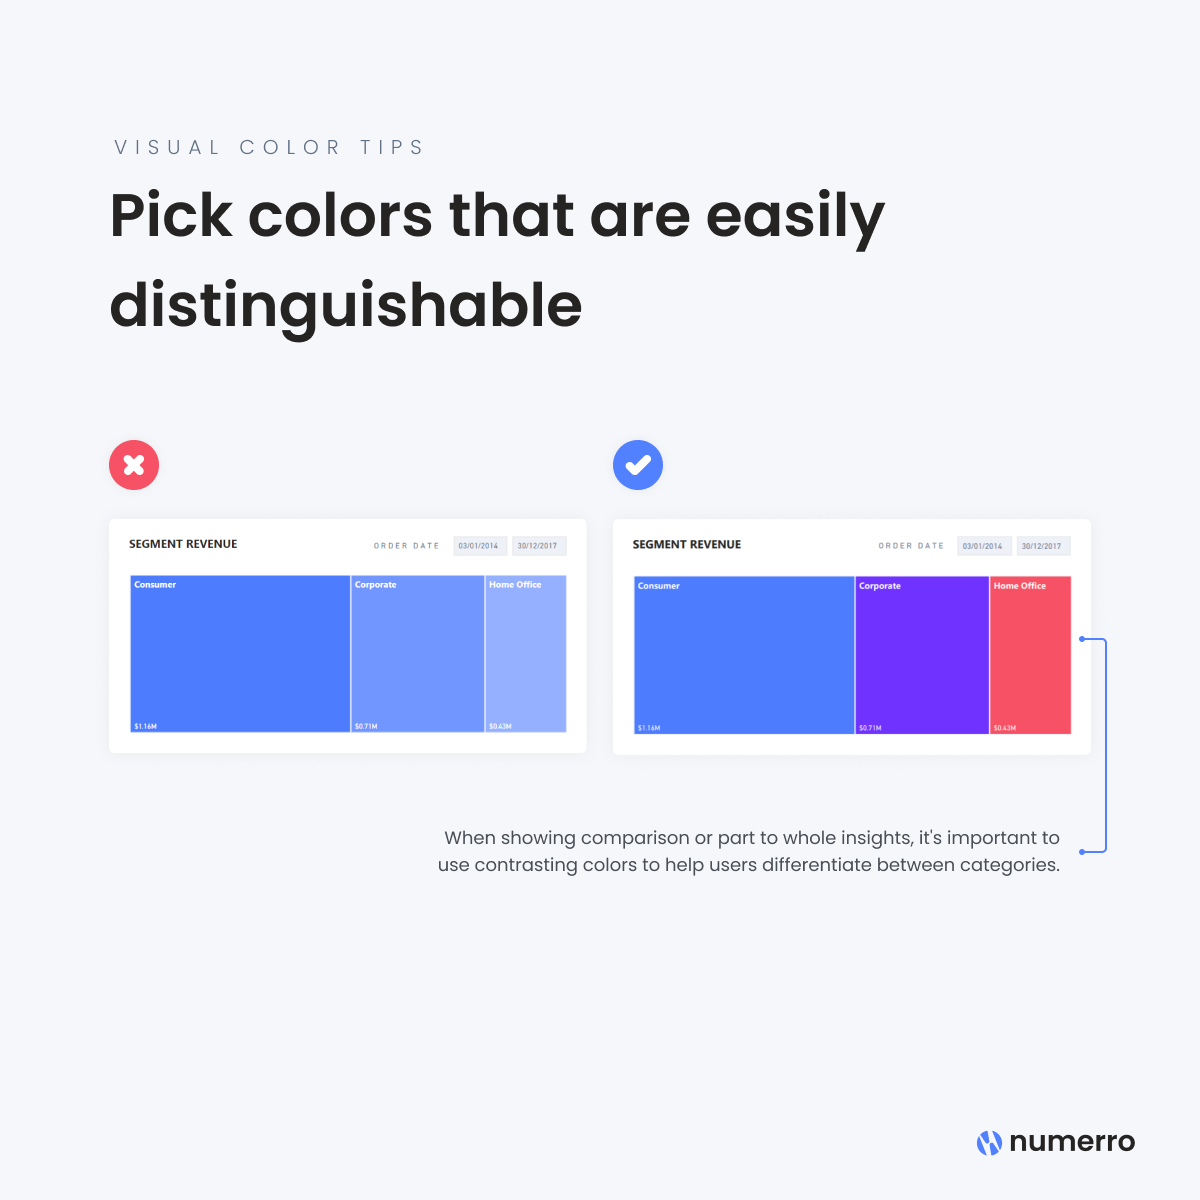 Pick Colors That Are Easily Distinguishable